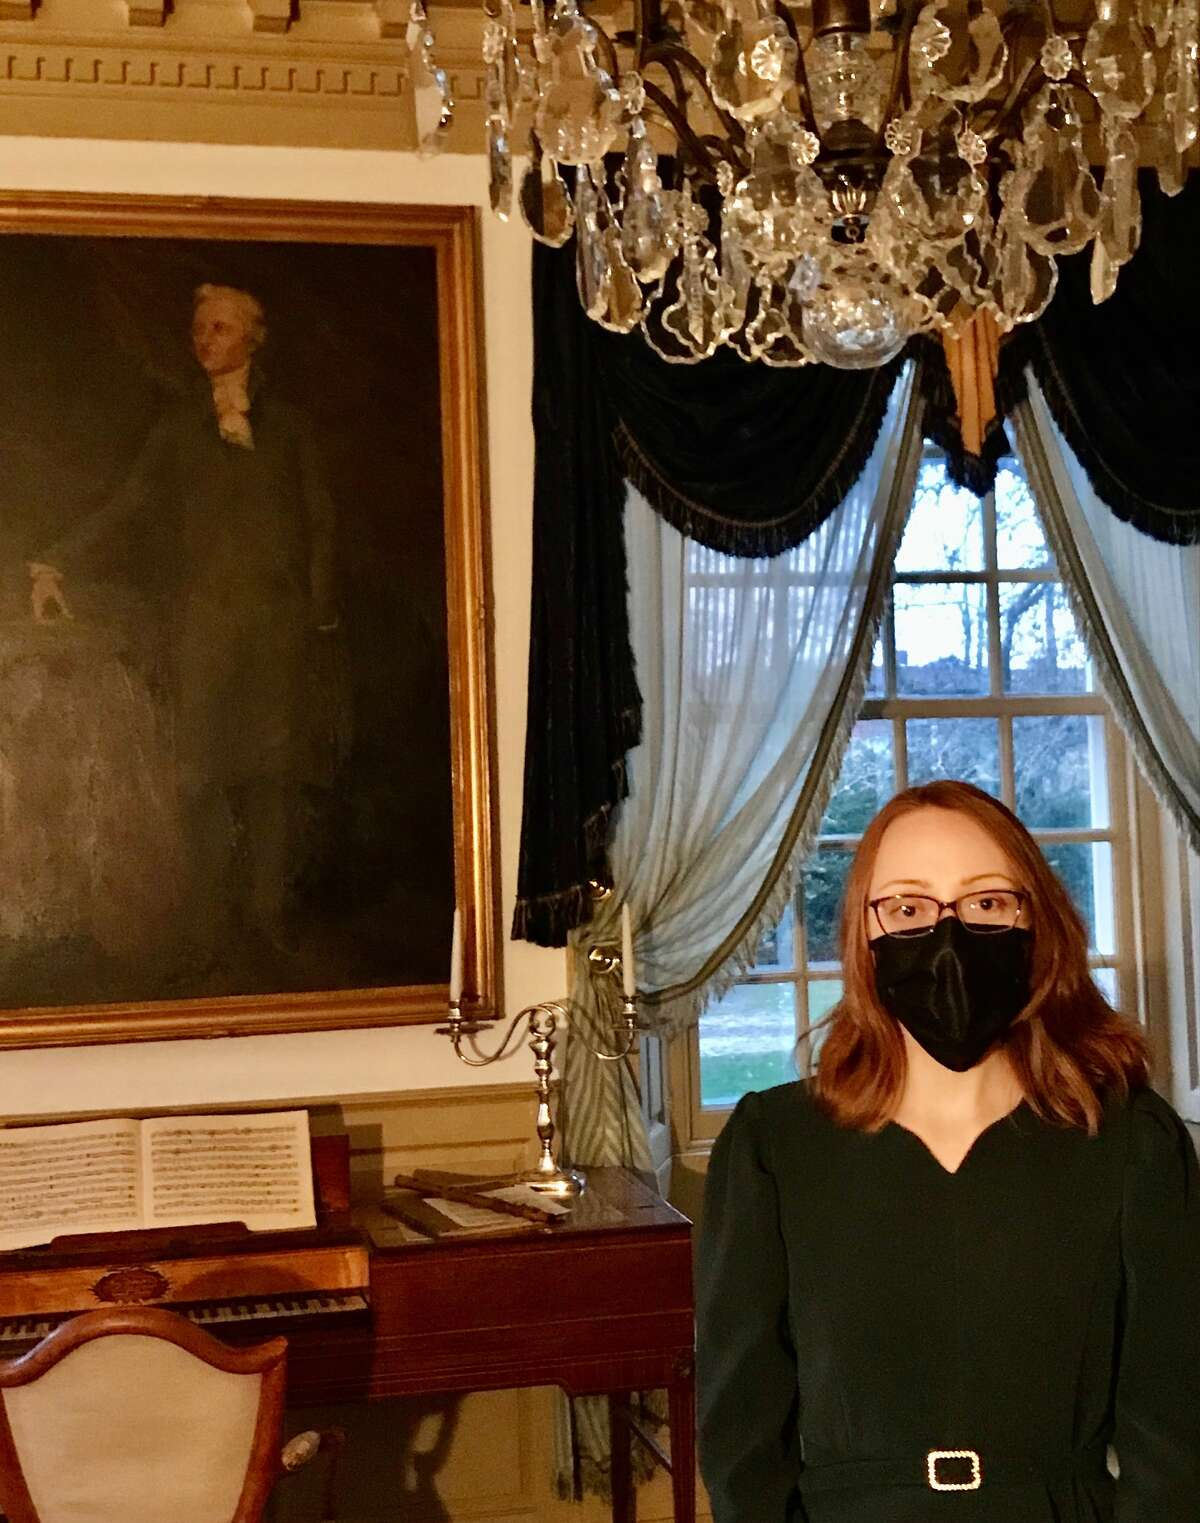 Jessie Serfilippi, who has an MFA in creative writing and primarily writes fiction, stands beneath a portrait of Hamilton in the blue room,  where Hamilton married Schuyler's daughter, Elizabeth, on Dec. 14, 1780.